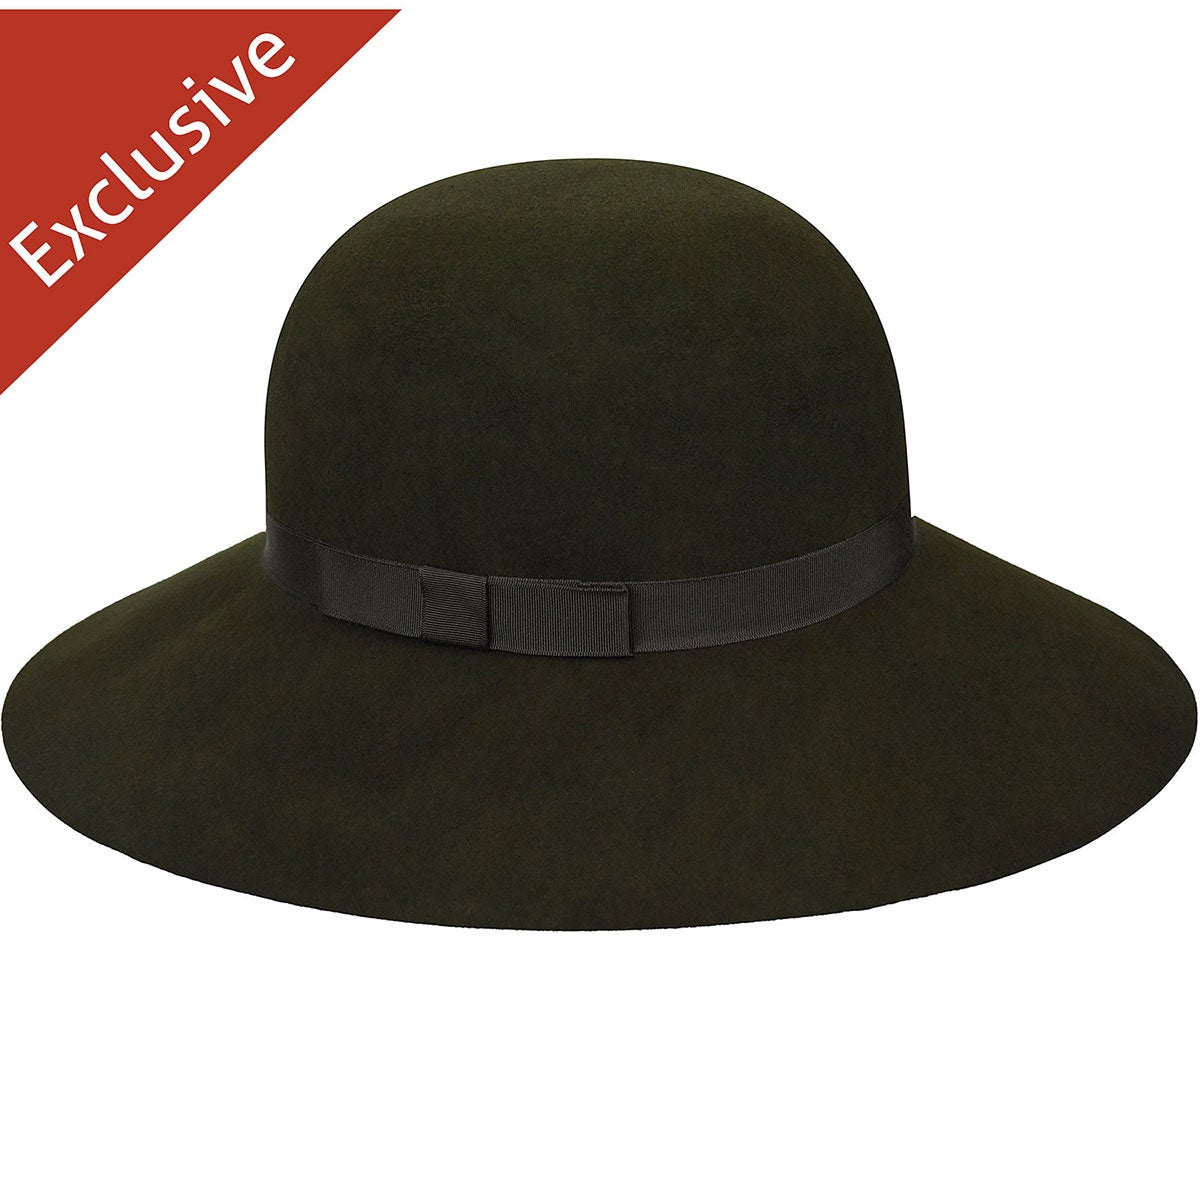 Hats.com Abby Wide Brim Hat in Loden